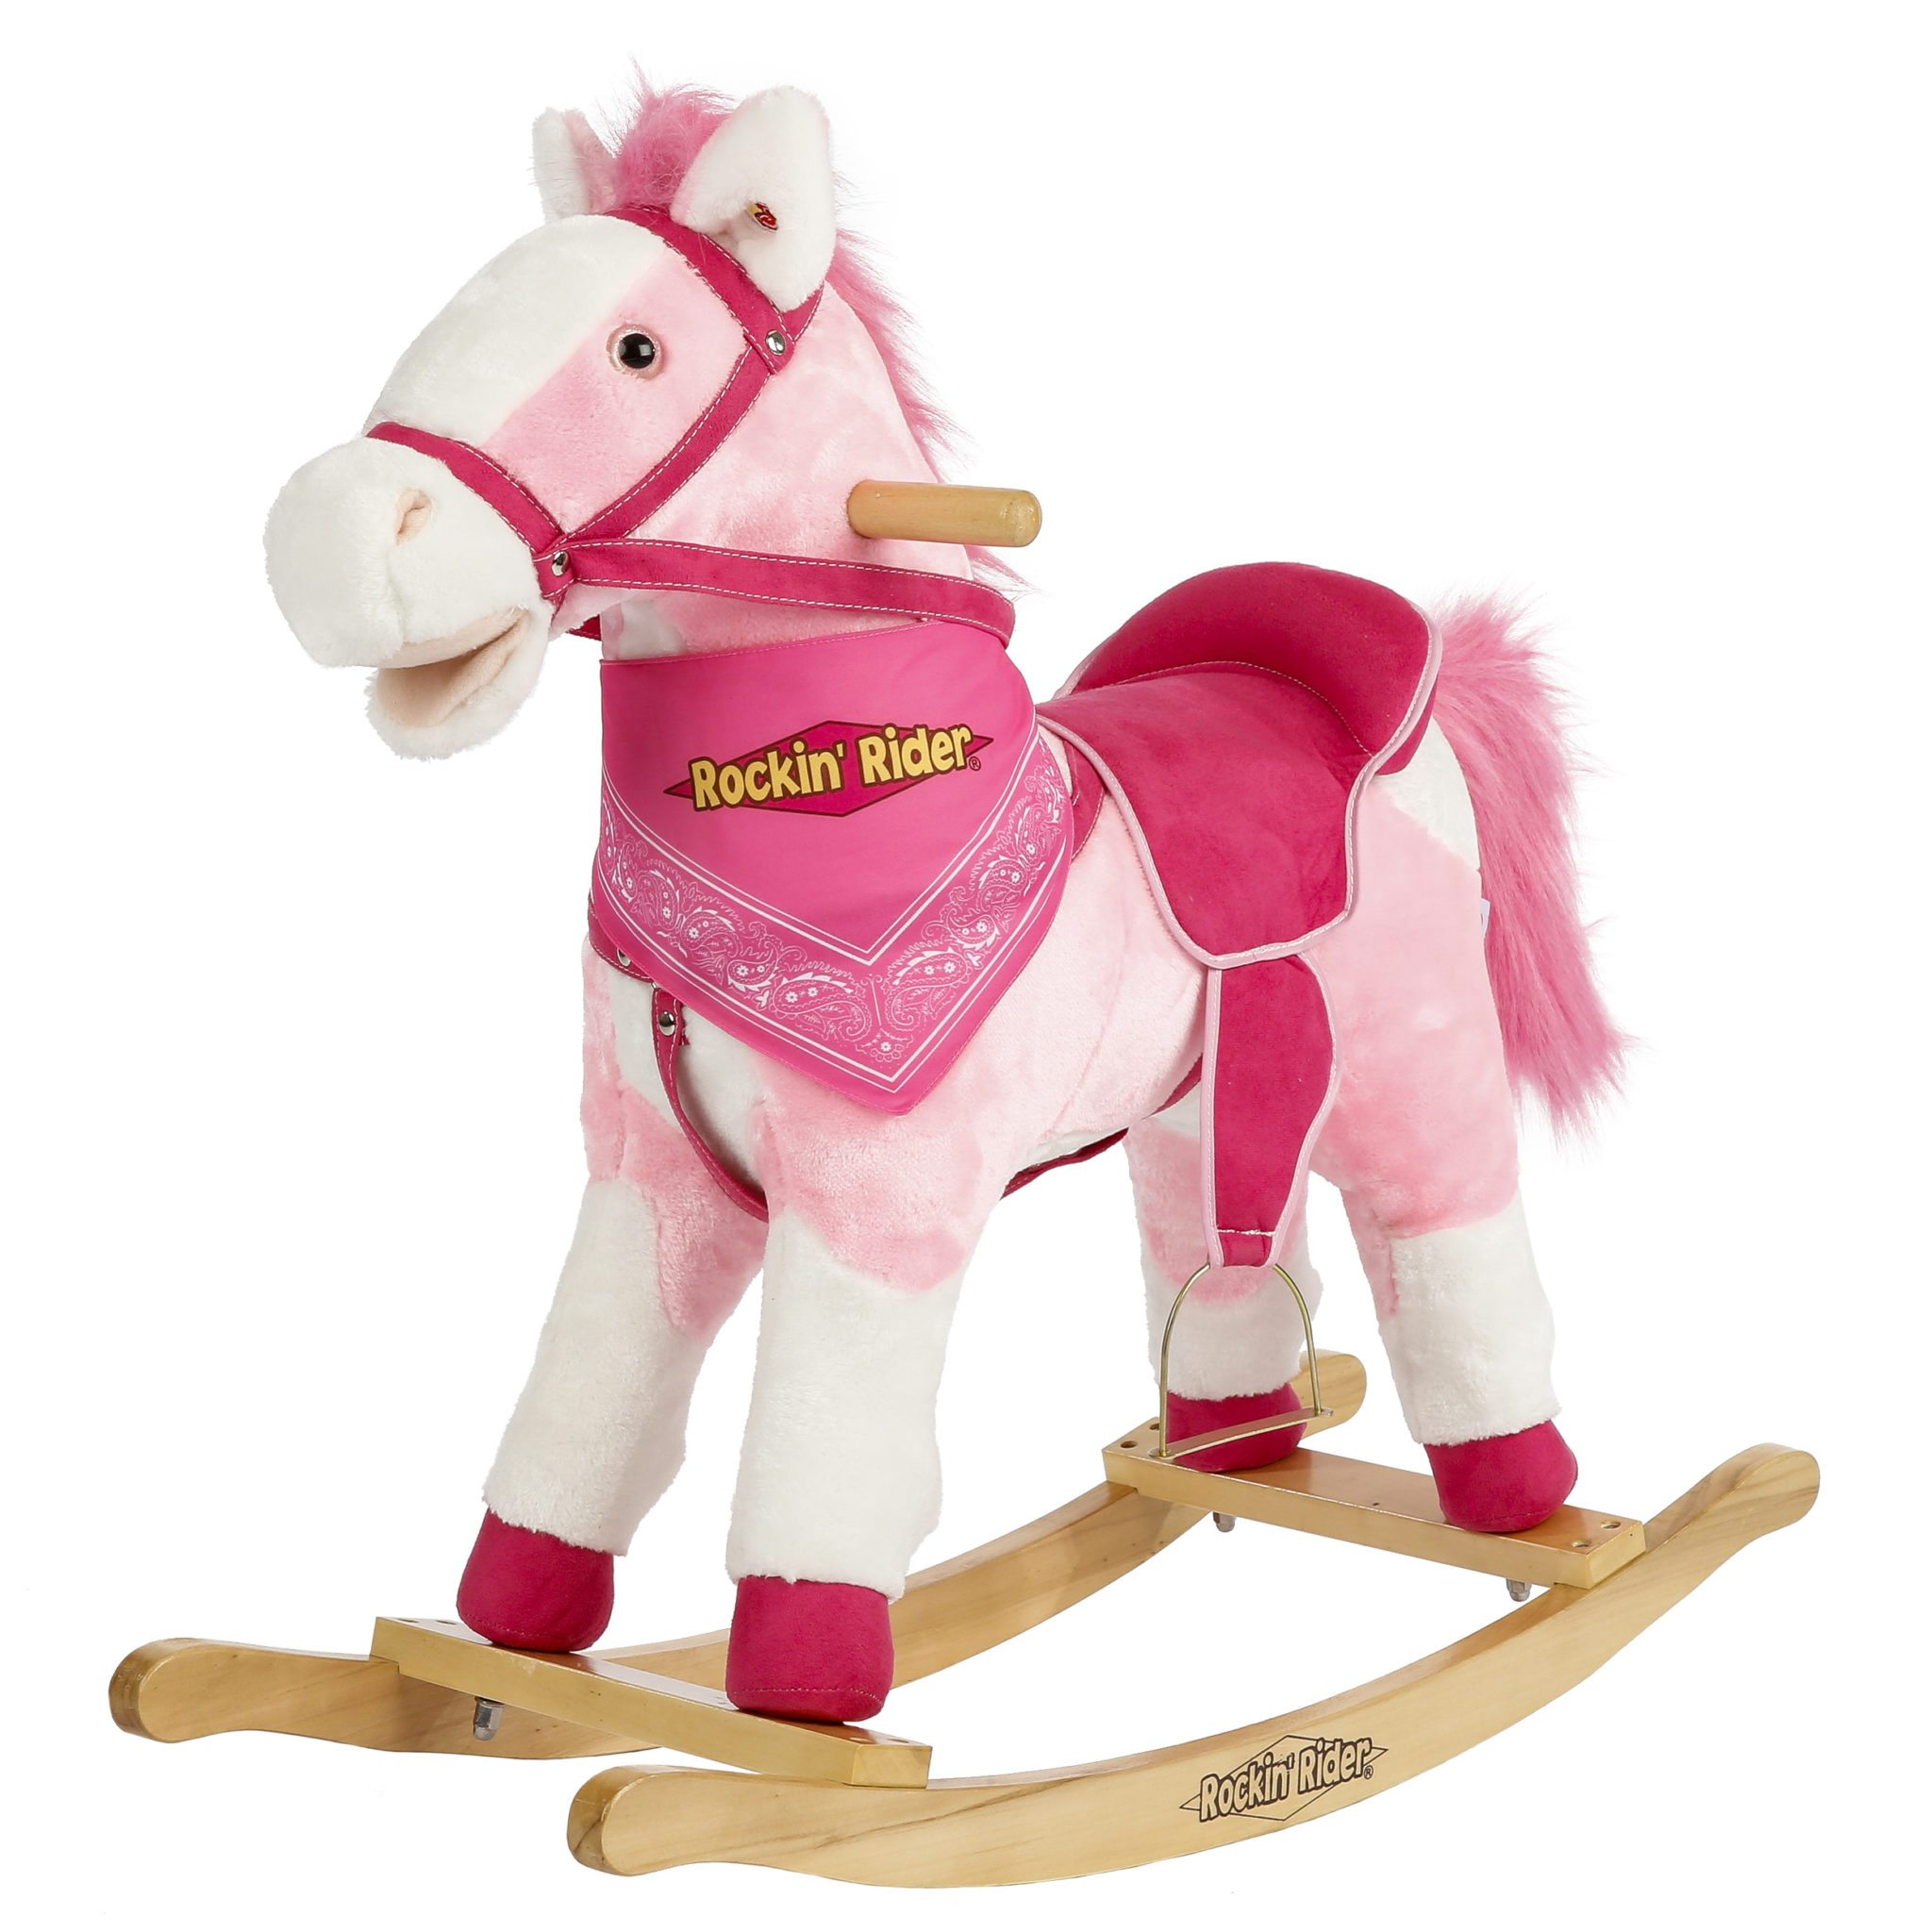 Rocking Horse Pink Holly Rockin Rider